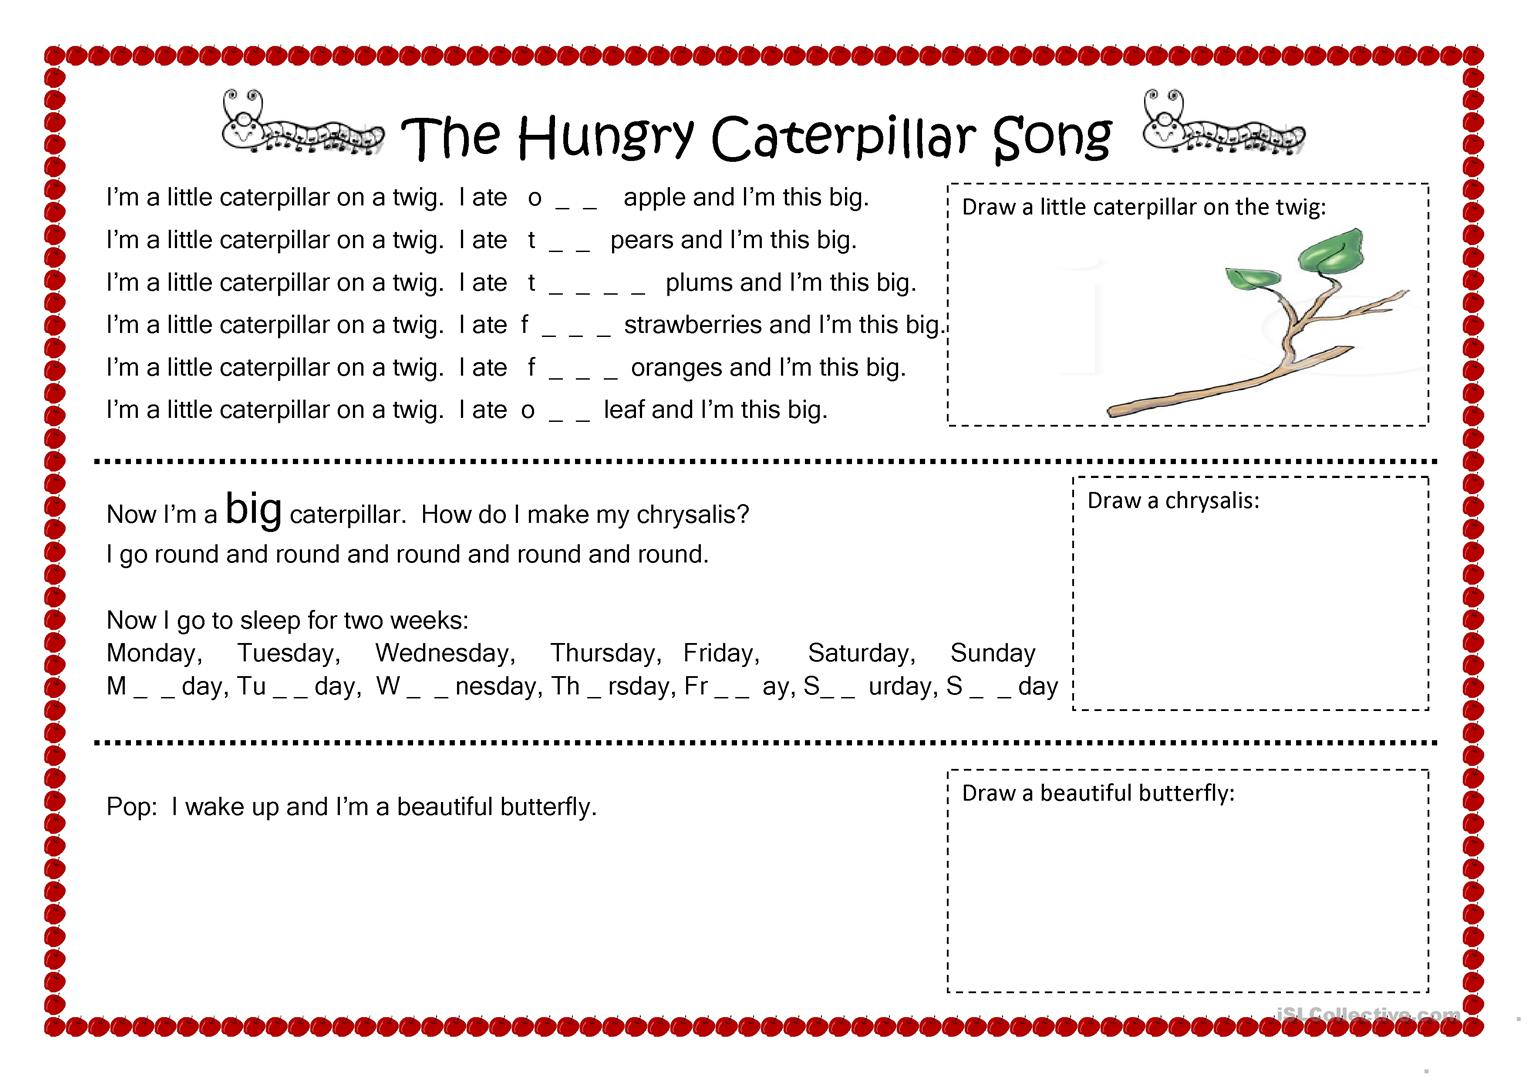 The Hungry Caterpillar Song Worksheet